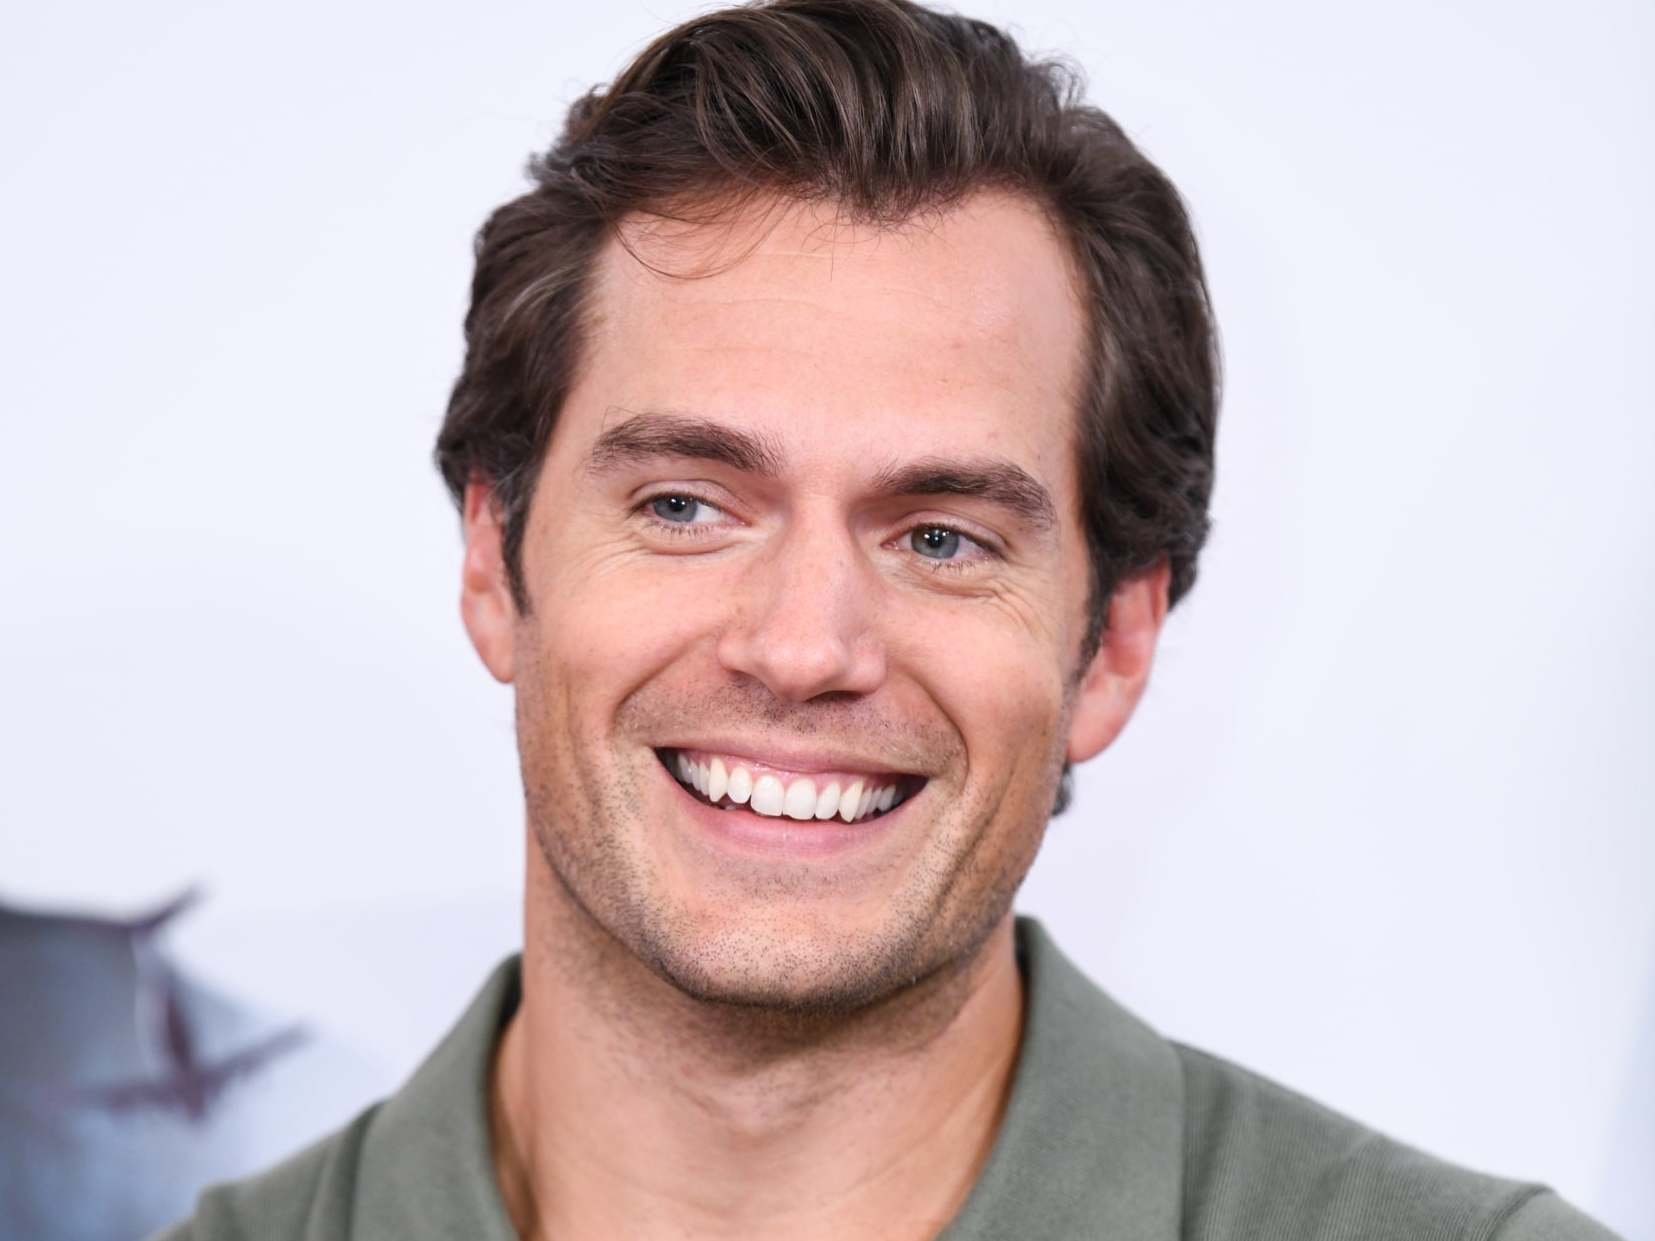 Henry Cavill says he was called 'chubby' by director during topless James Bond audition